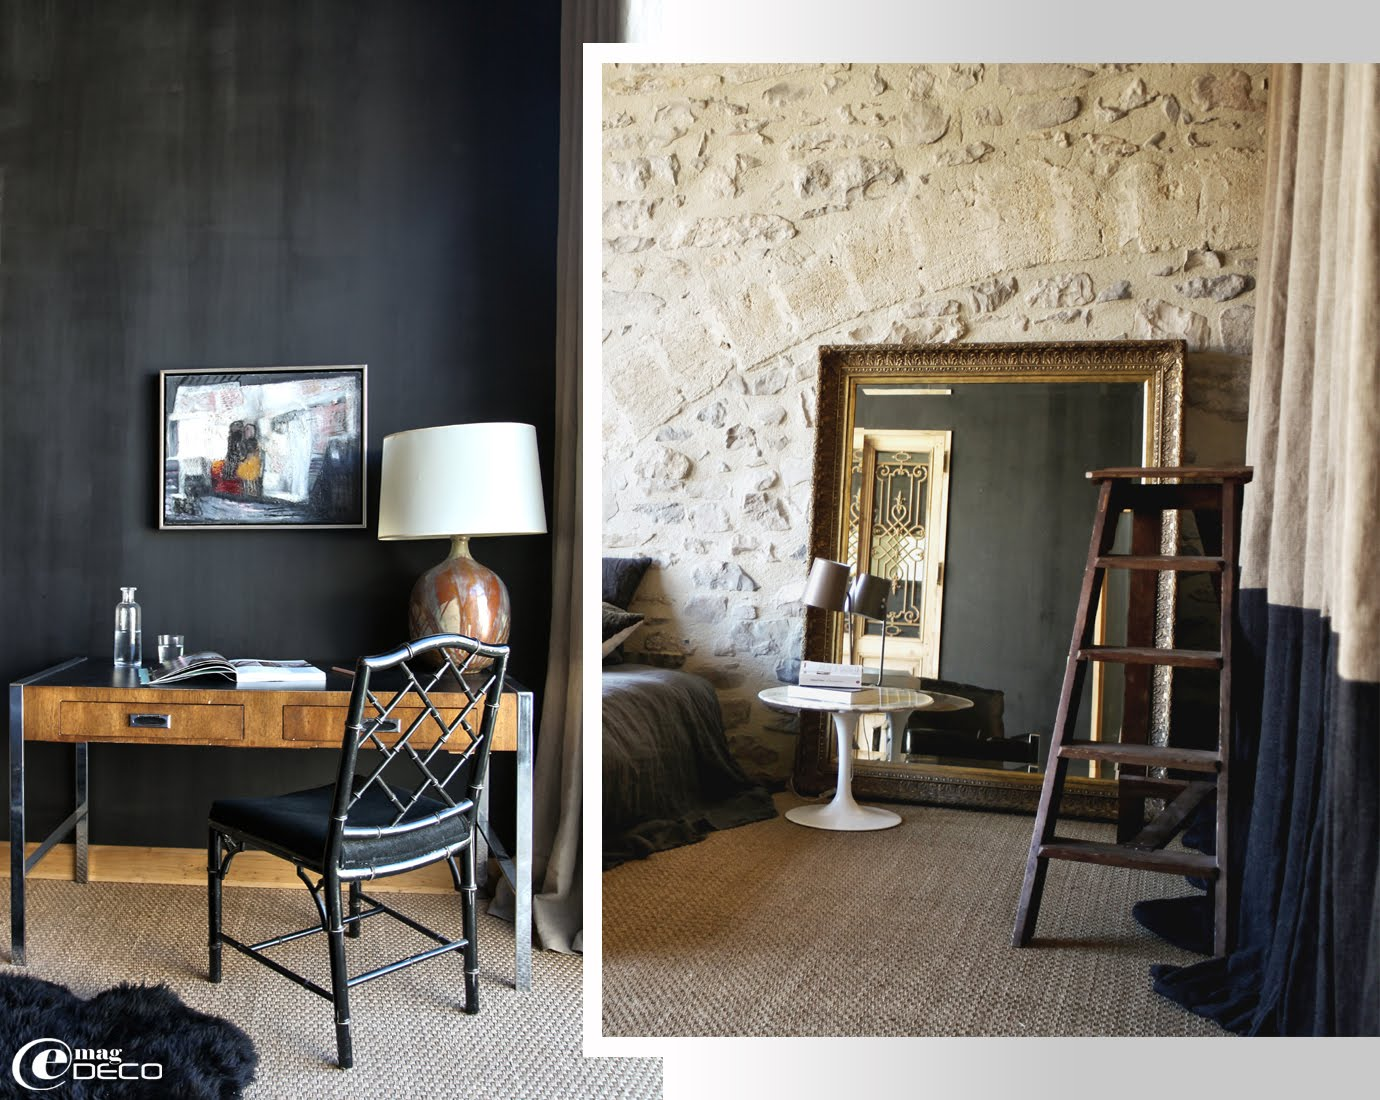 un ancien moulin huile en vaunage e magdeco magazine de d coration. Black Bedroom Furniture Sets. Home Design Ideas